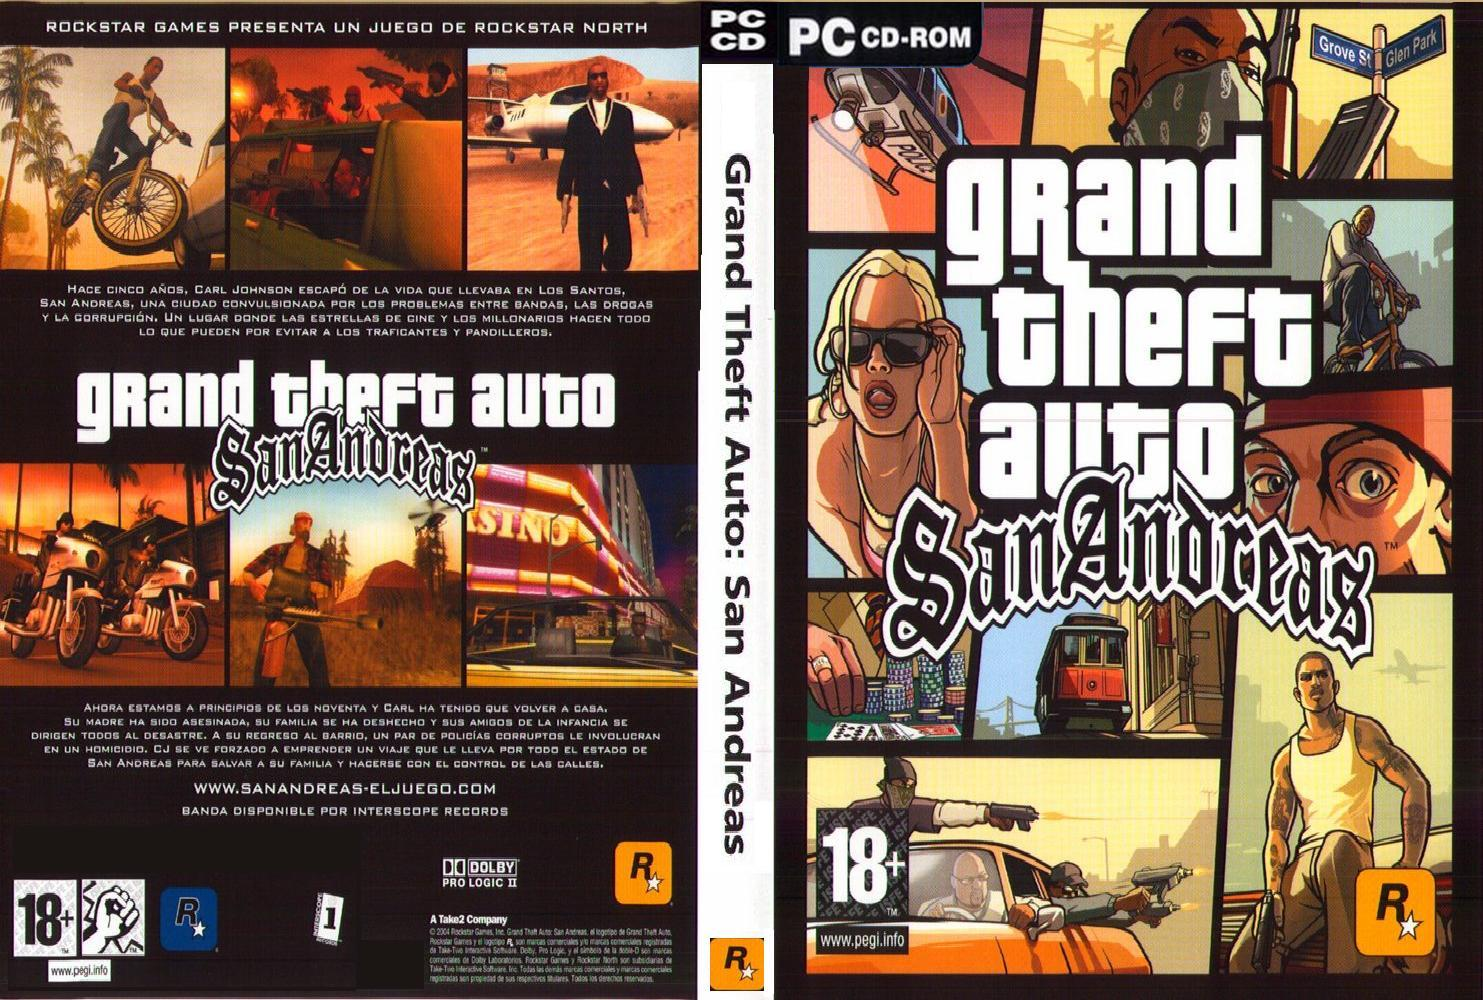 in the controversial grand theft auto video game series game features